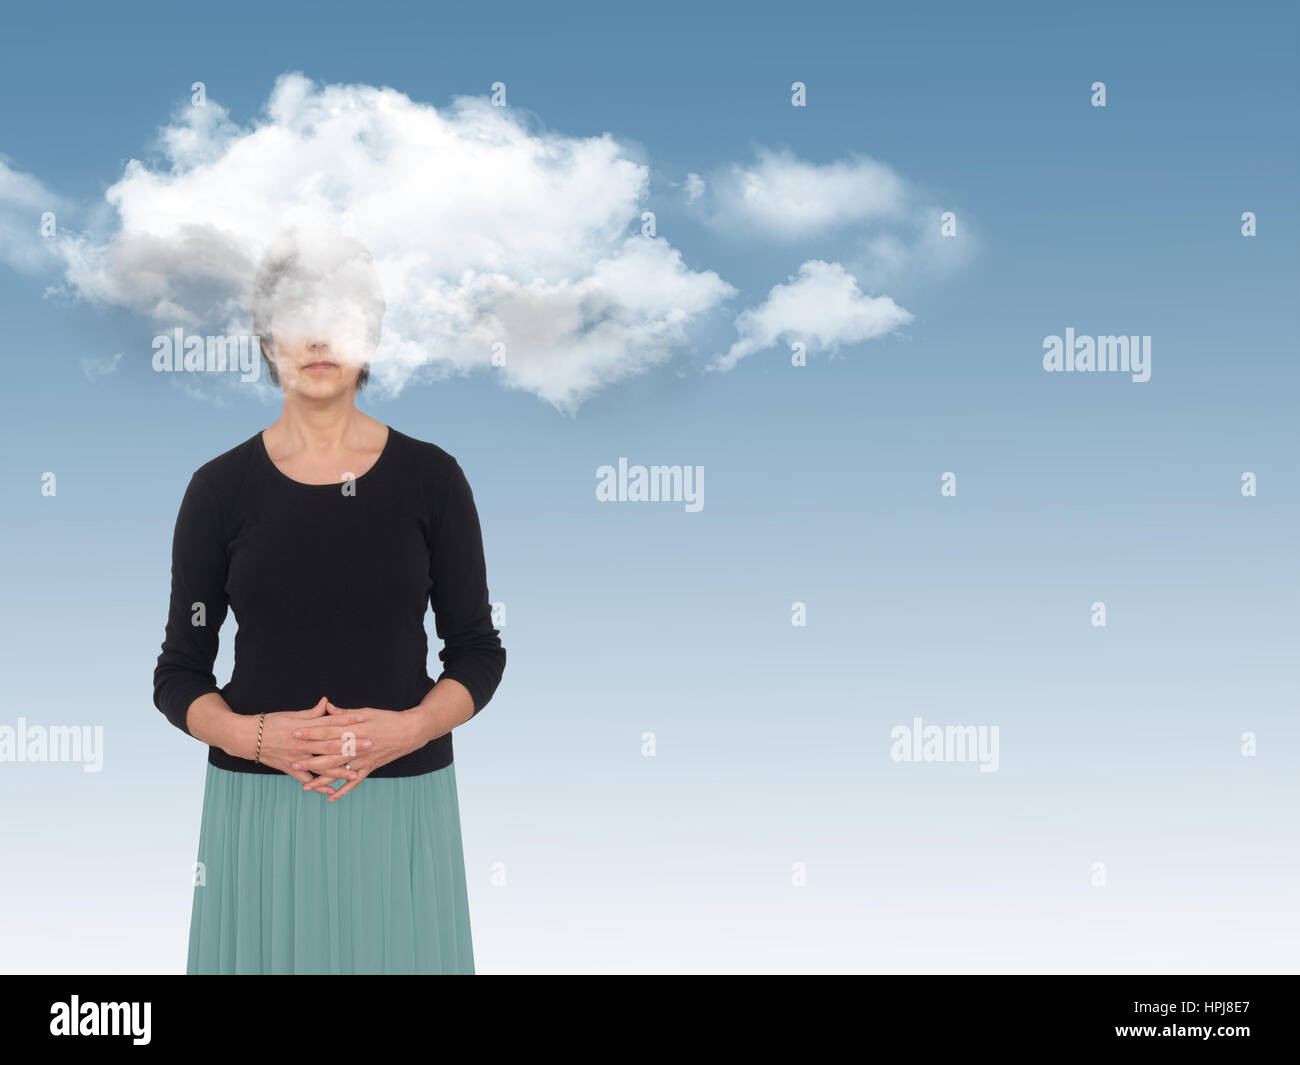 Woman with head in clouds on blue. Day dreams concept, metaphor. - Stock Image